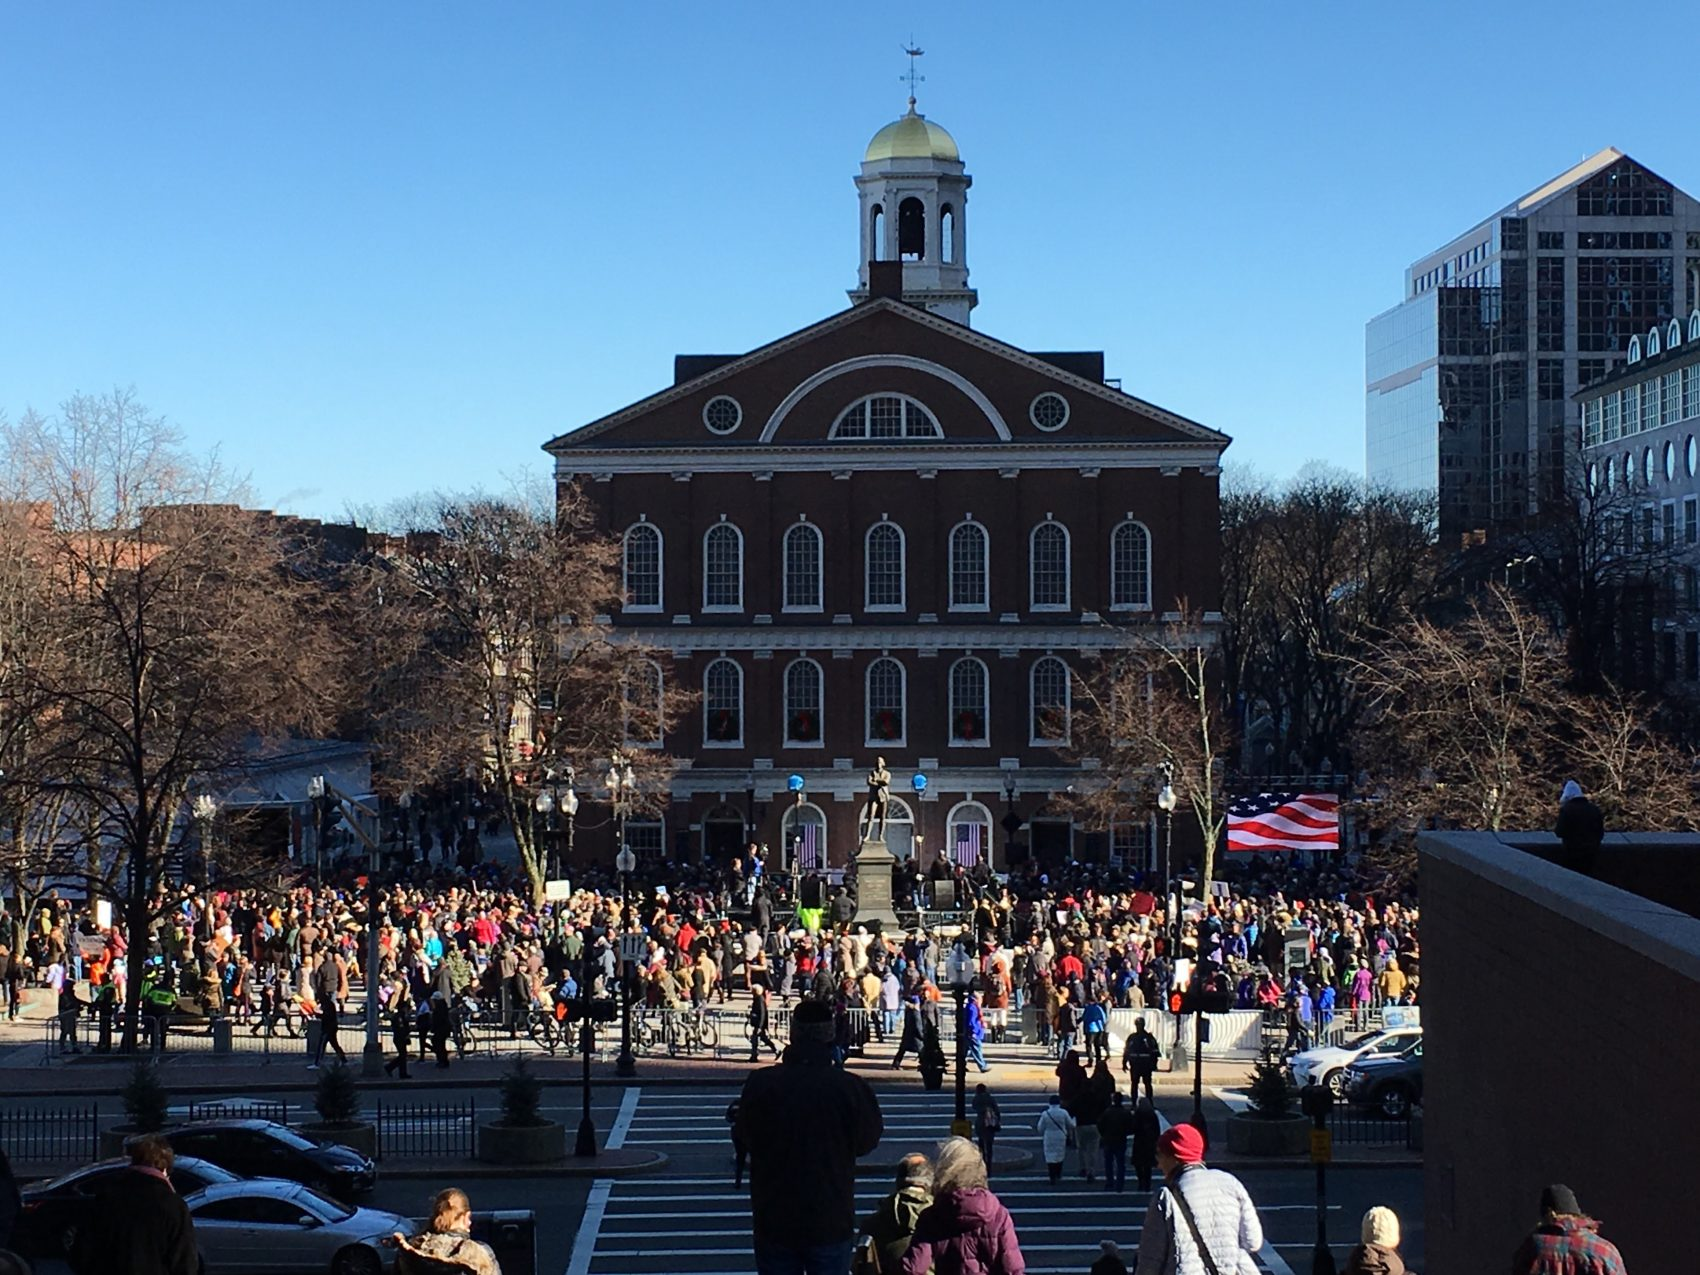 On Sunday, almost the entire Massachusetts congressional delegation participated in a rally at Faneuil Hall in support of the Affordable Care Act. Similar rallies in support of President Obama's signature healthcare law also occured throughout the country Sunday. (Qainat Khan/WBUR)